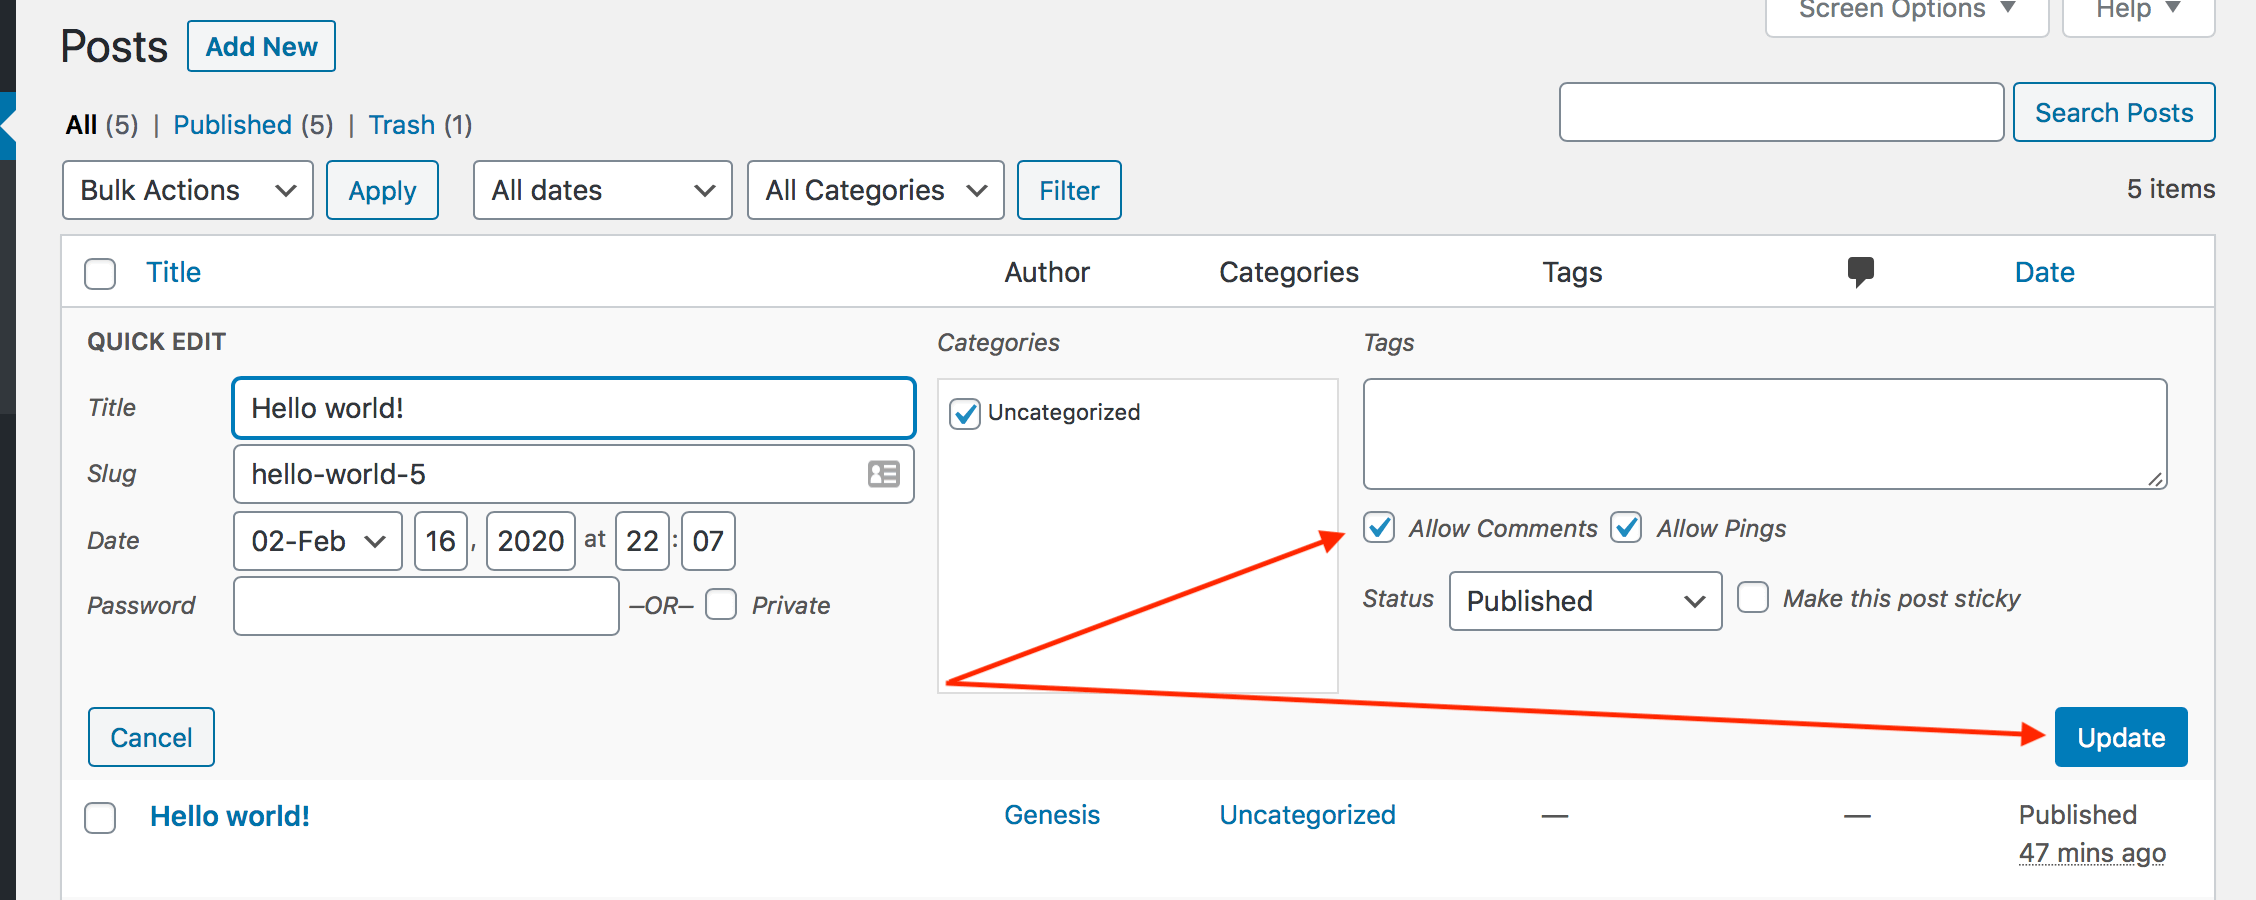 How to allow comments in a single WordPress post